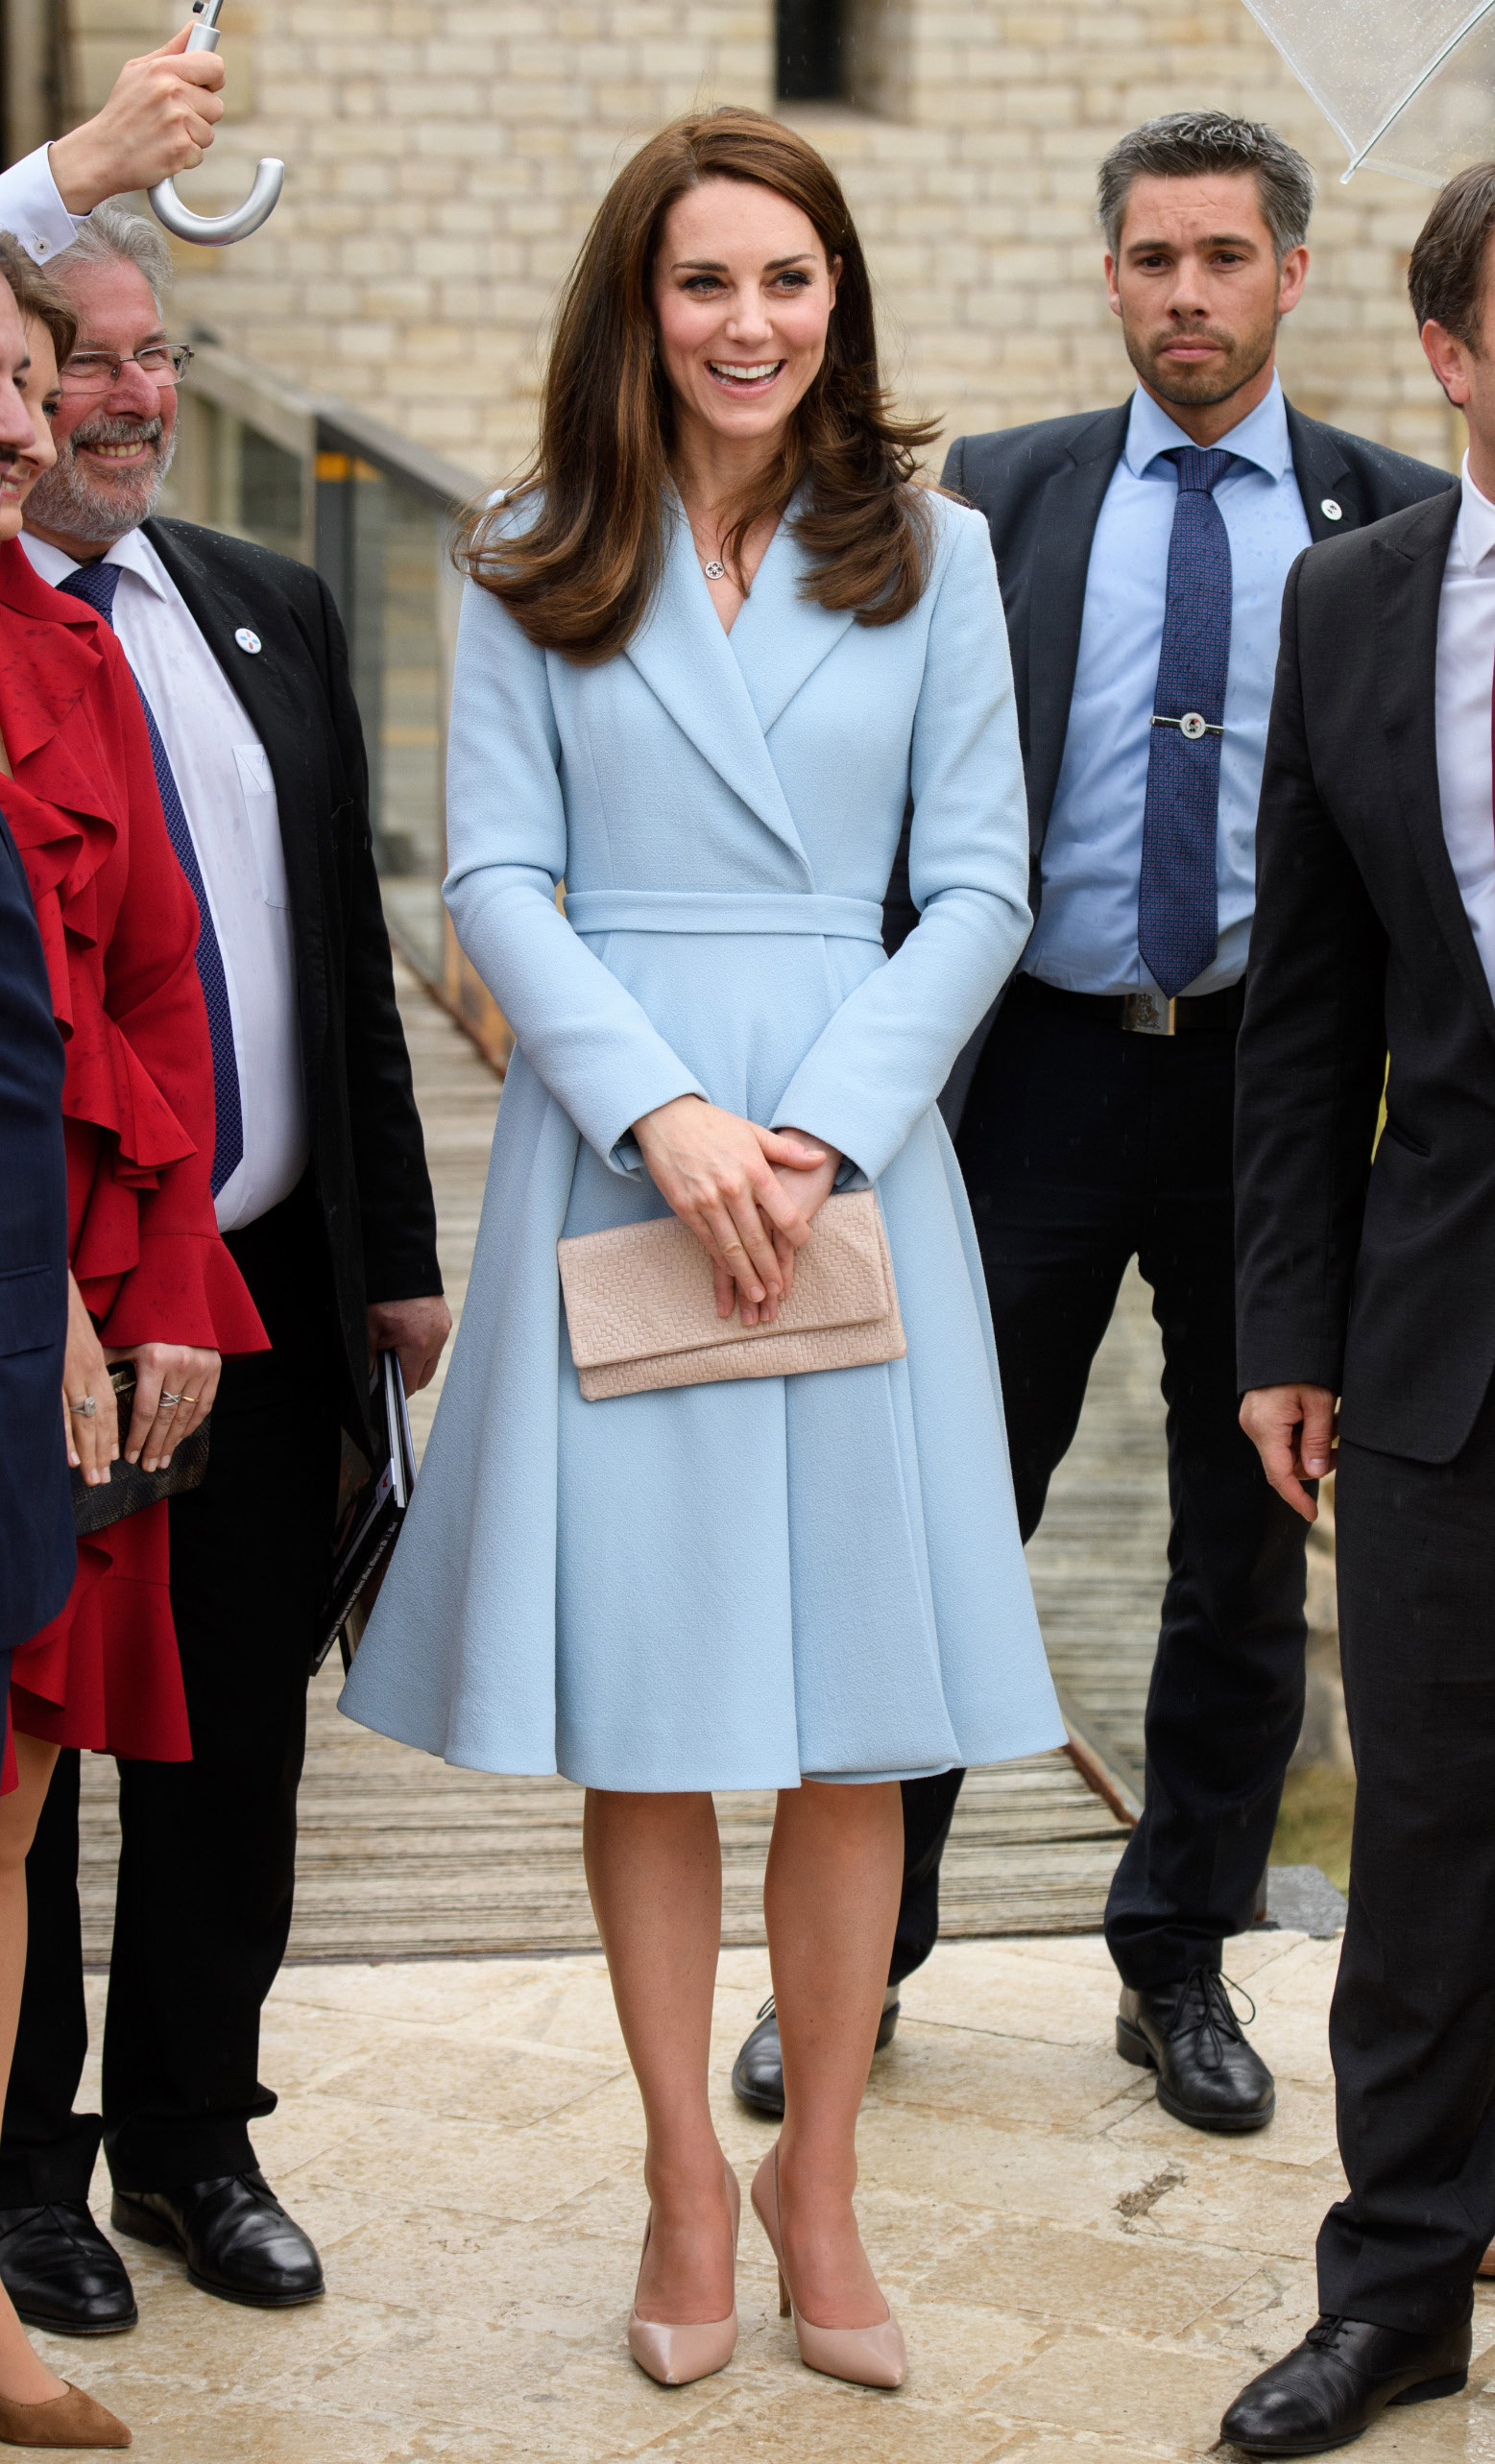 LUXEMBOURG - MAY 11:  Catherine, Duchess of Cambridge  visits the  Drai Eechelen Museum during a one day visit on May 11, 2017 in Luxembourg. The Duchess will attend a series of engagements to celebrate the cultural and historic ties between the UK and Luxembourg and the official commemoration of the 1867 Treaty of London, which confirmed Luxembourg's independence and neutrality.  (Photo by Tim Rooke - Pool/Getty Images)